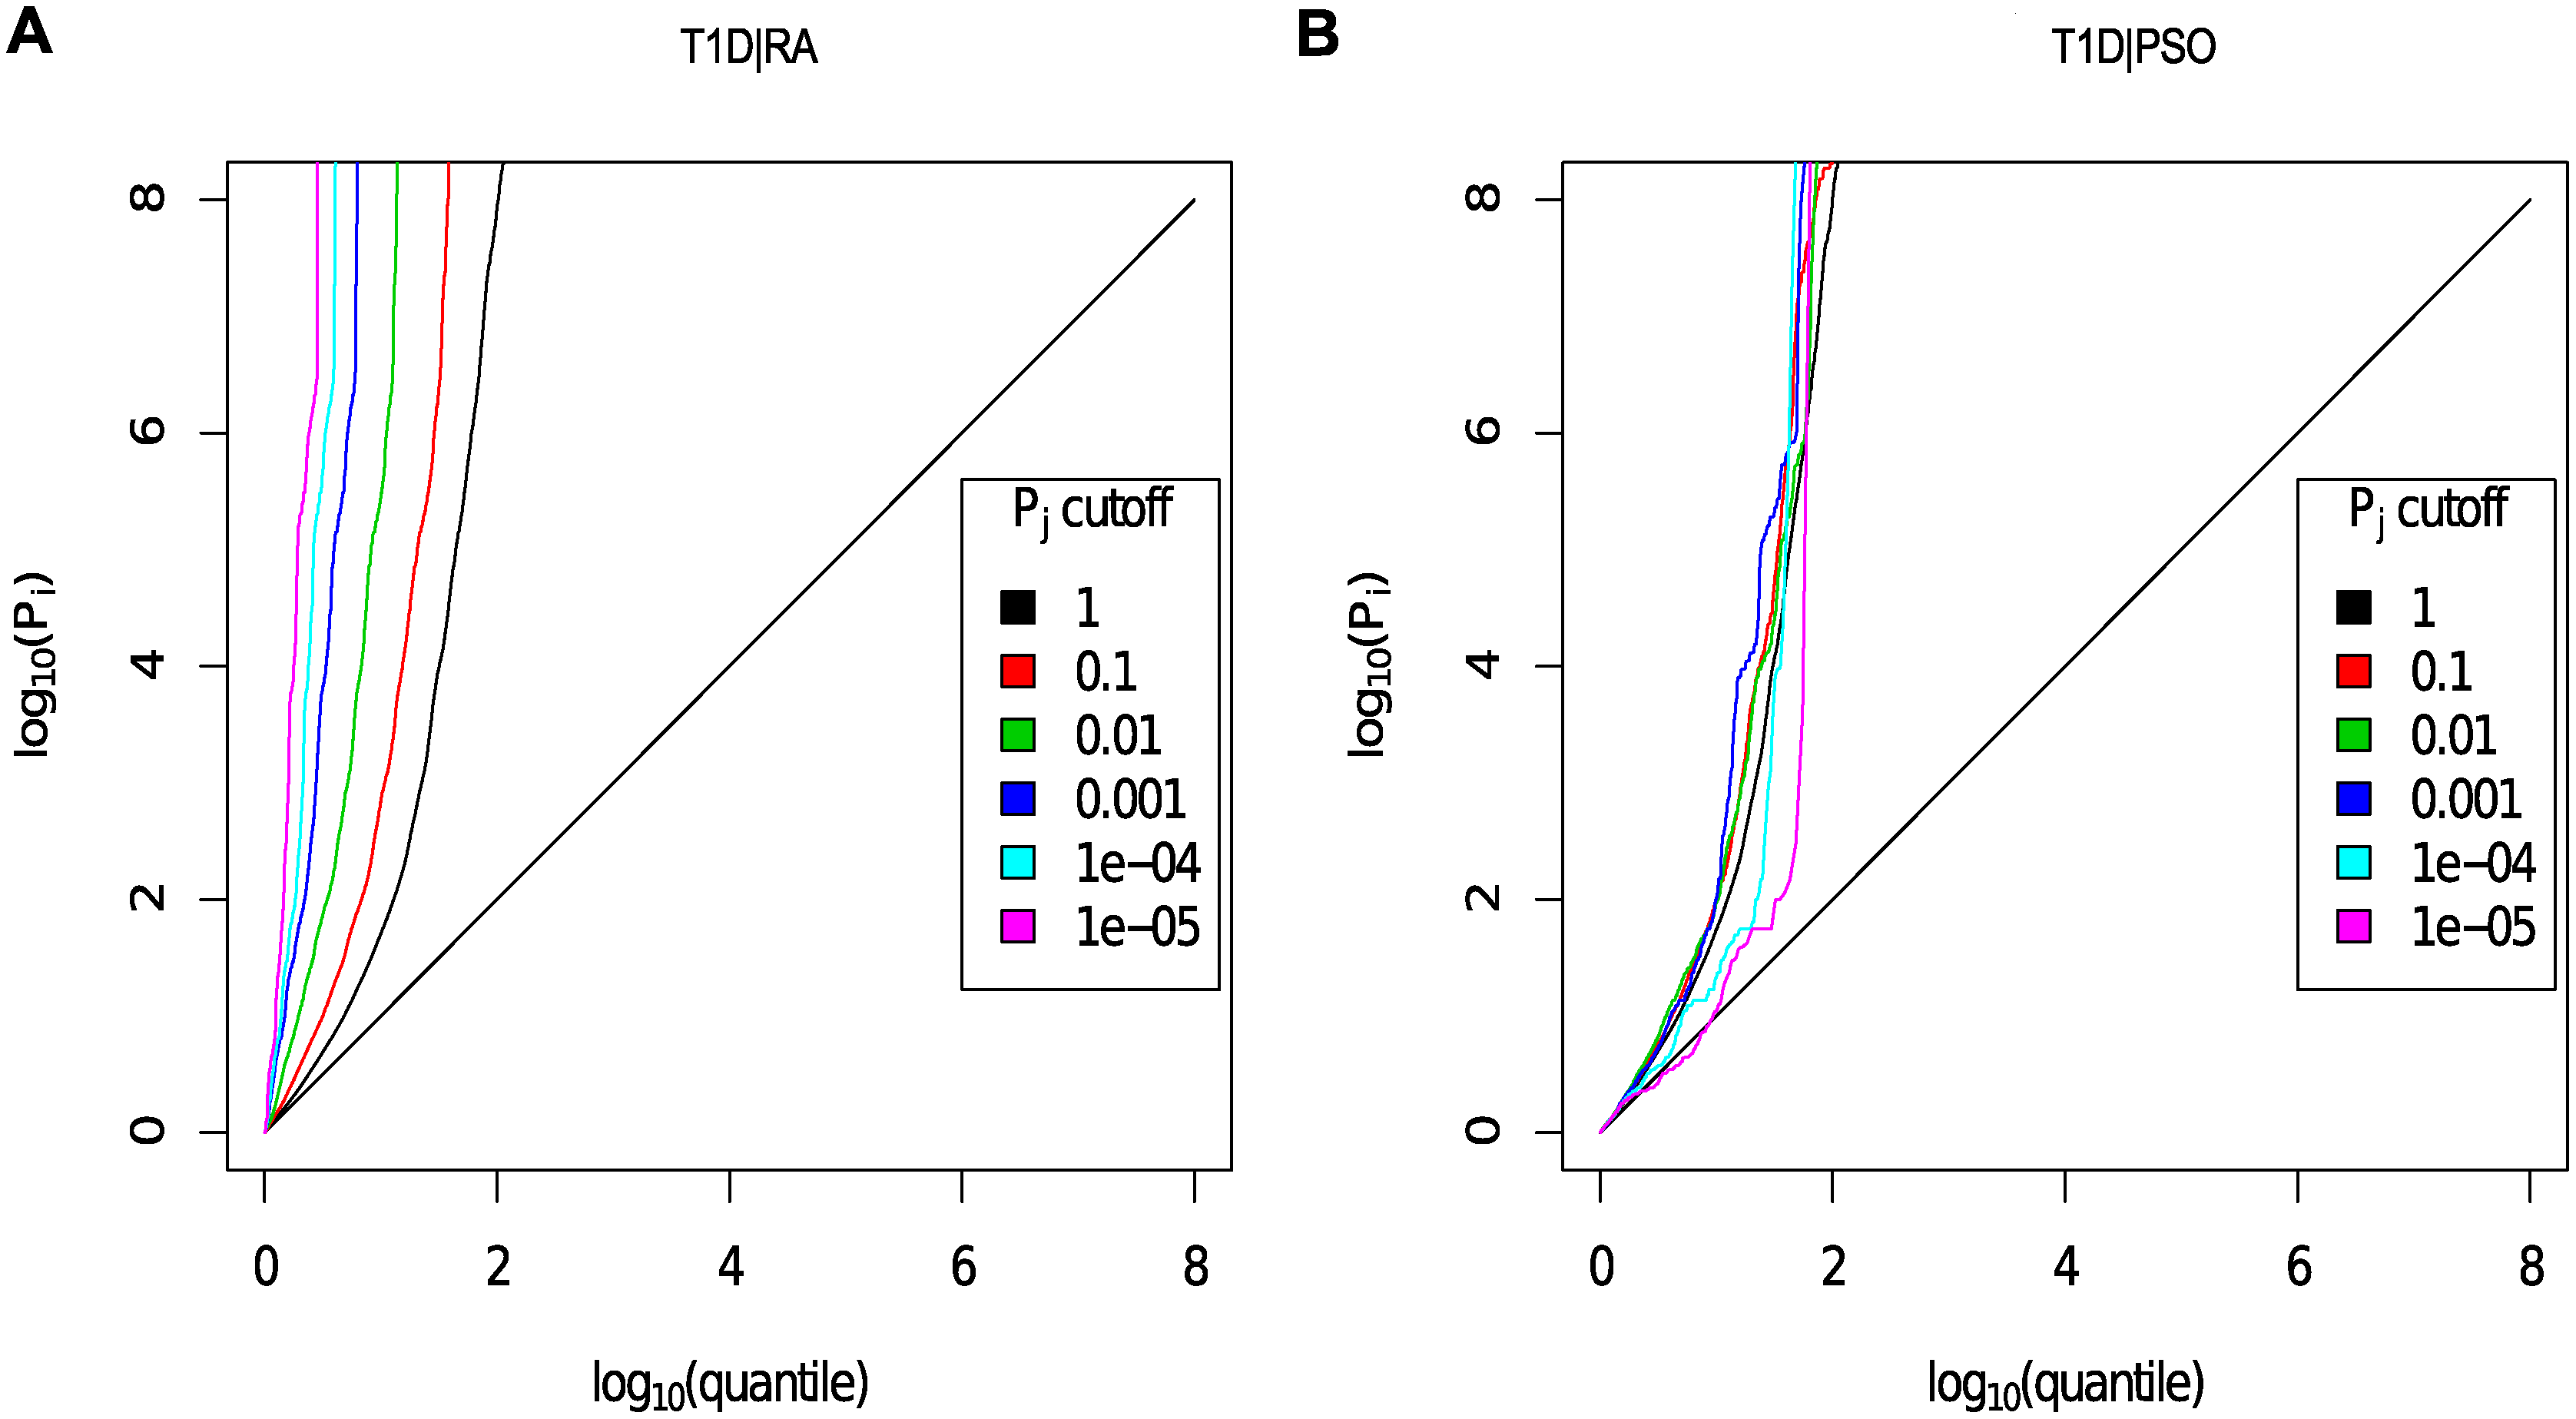 Q-Q plots for T1D conditional on RA (Panel A) and PSO (Panel B).